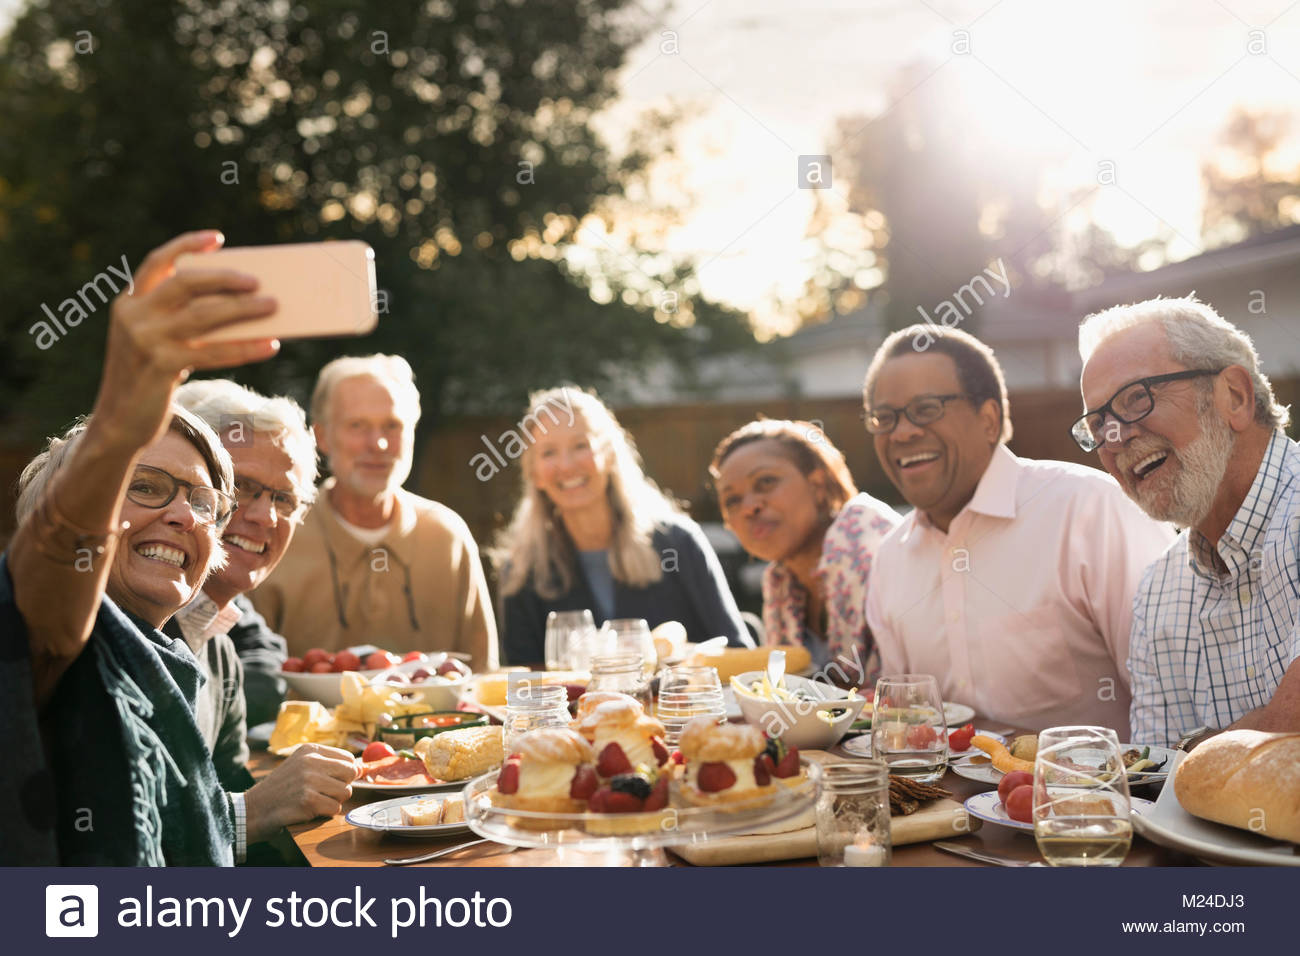 Smiling senior friends posing for selfie at garden party lunch at sunny patio table - Stock Image